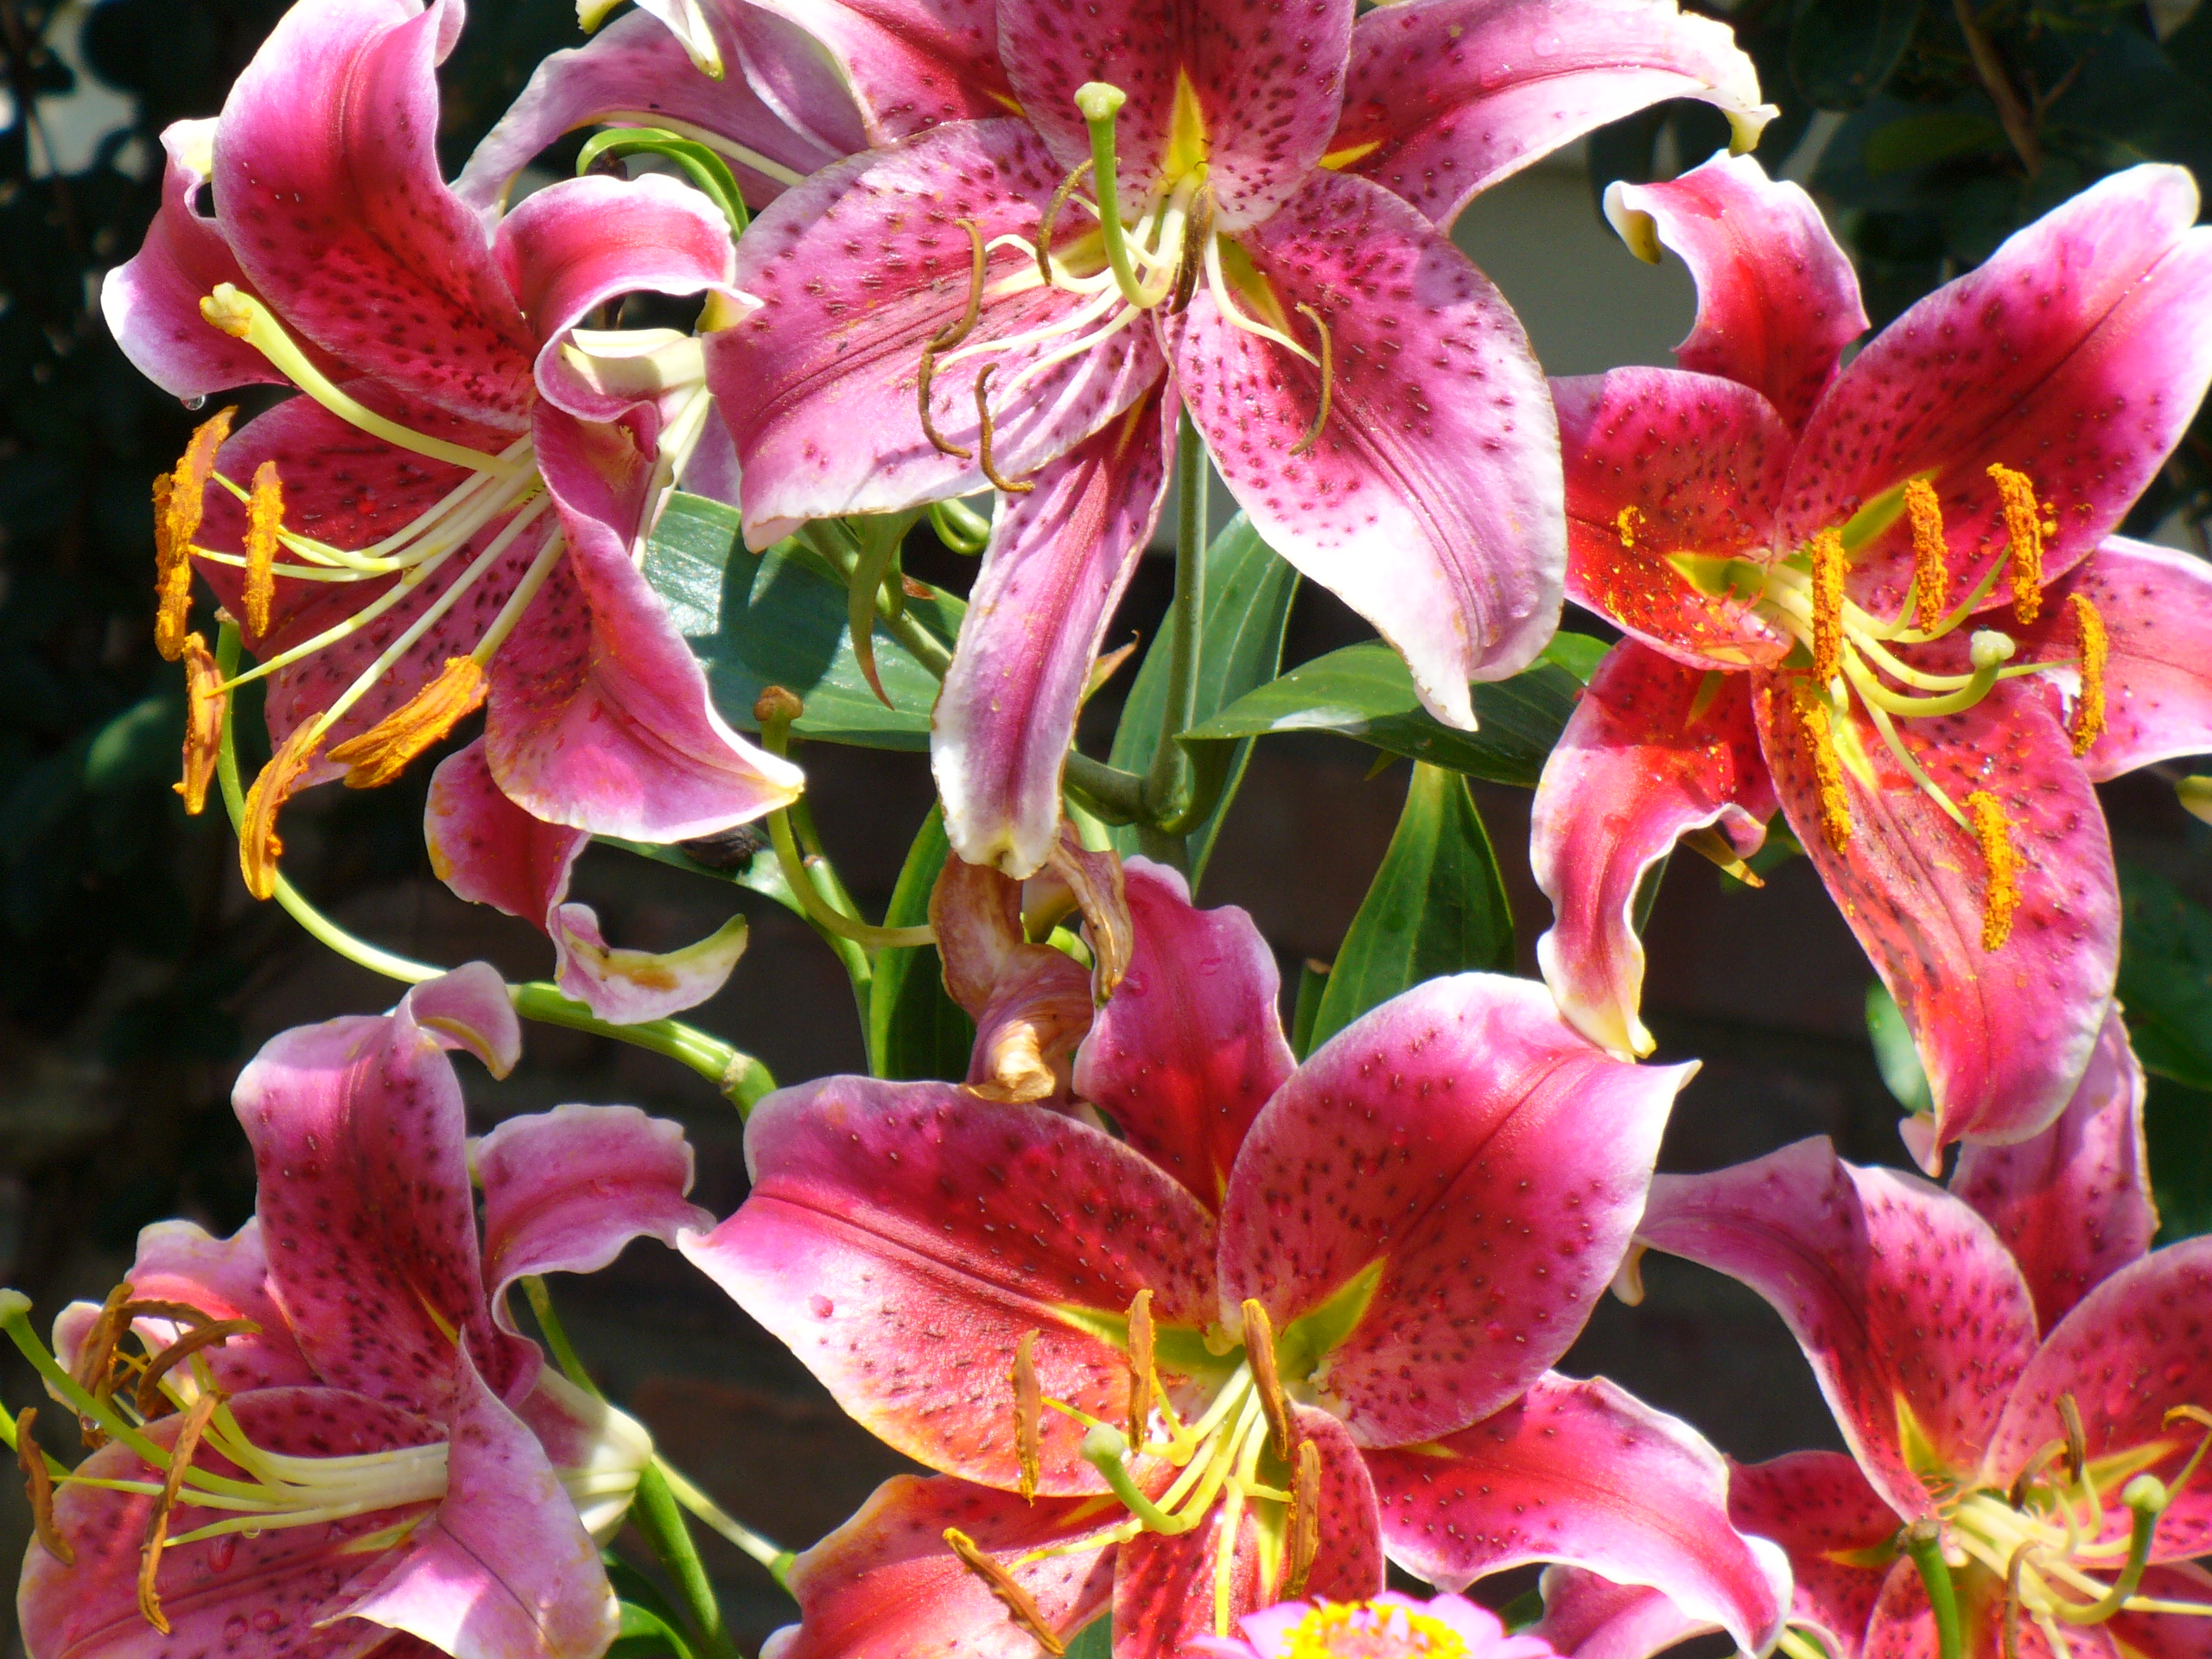 Interesting facts about stargazer lilies flower pressflower press stargazer lily flower facts dhlflorist Image collections